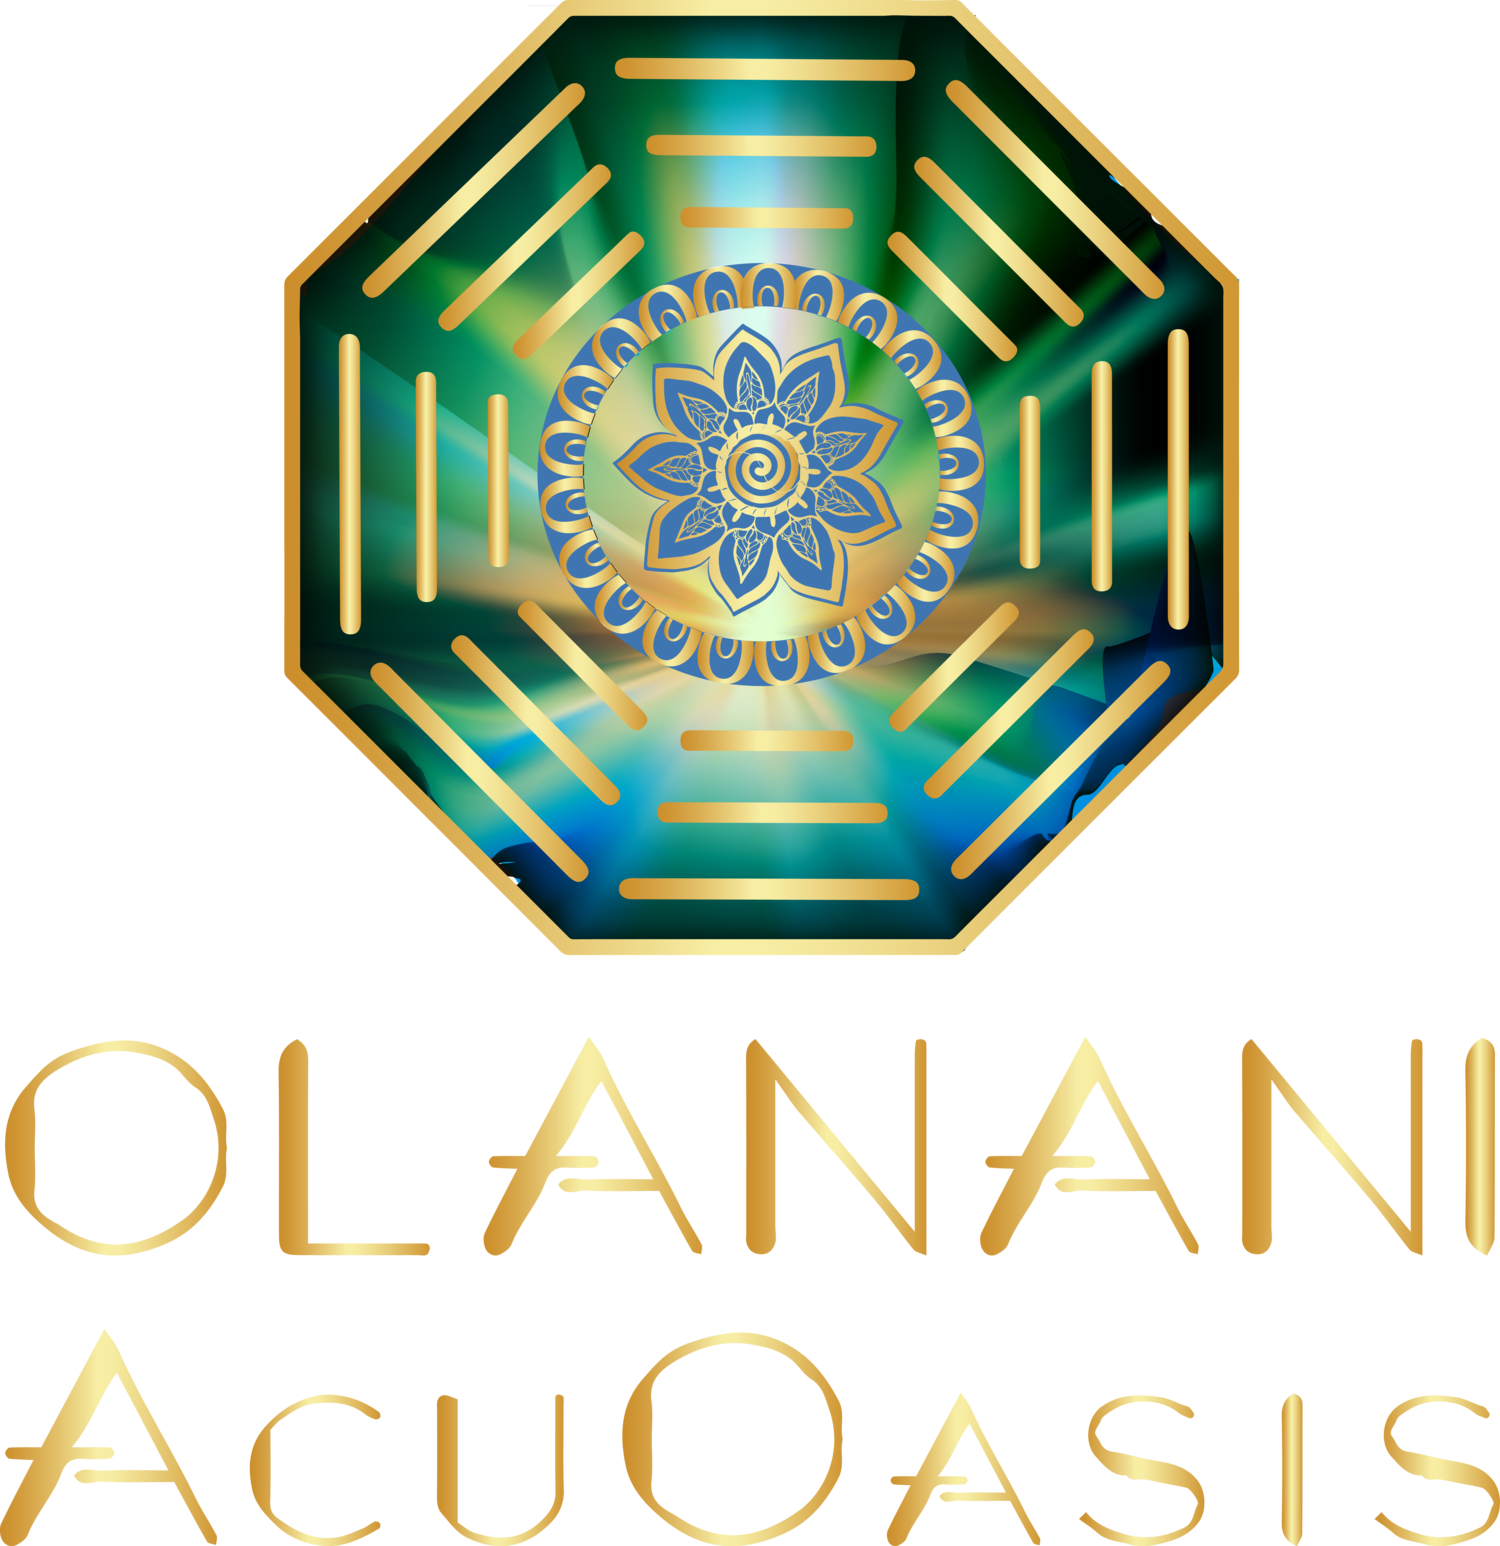 Welcome to Olanani AcuOasis